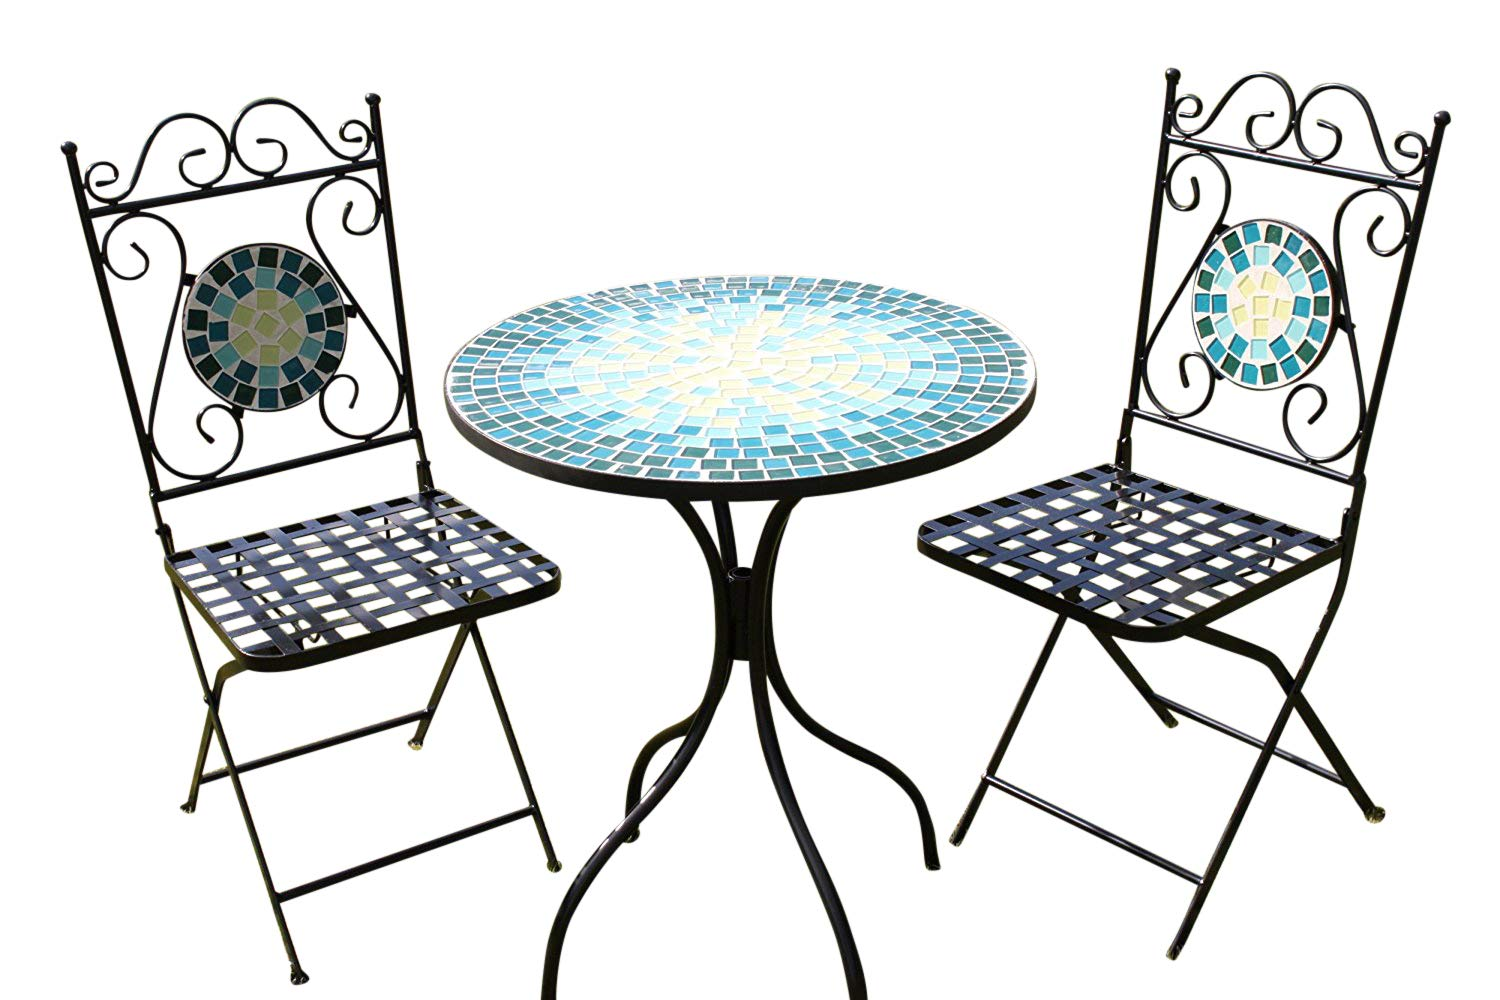 2 Seater 'Blue' Pattern Mosaic Bistro Patio Garden Set. Garden Market Place